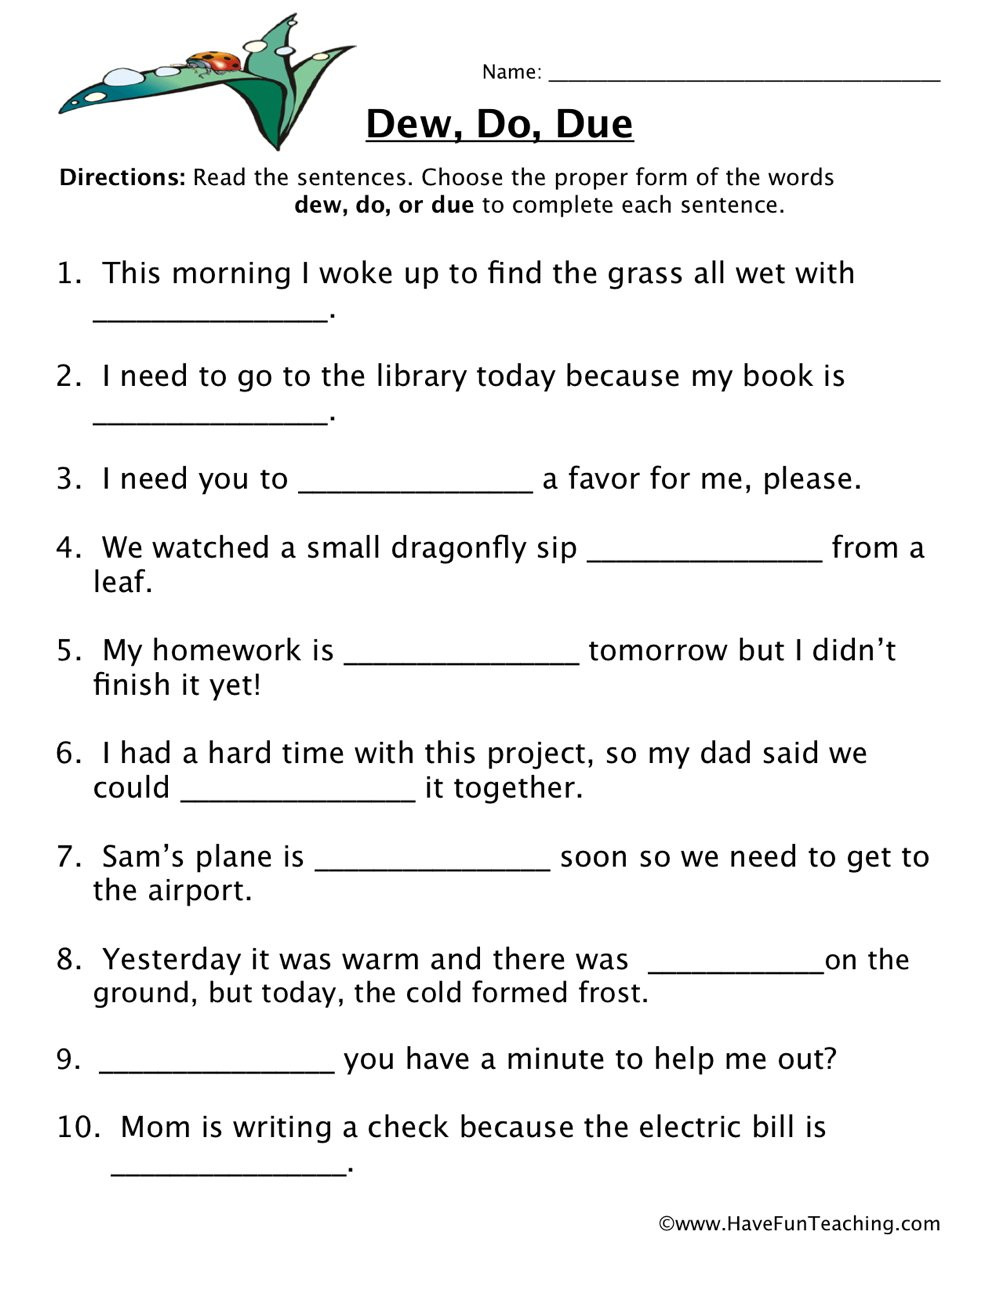 Homophones Worksheets 4th Grade Dew Do Due Homophones Worksheet